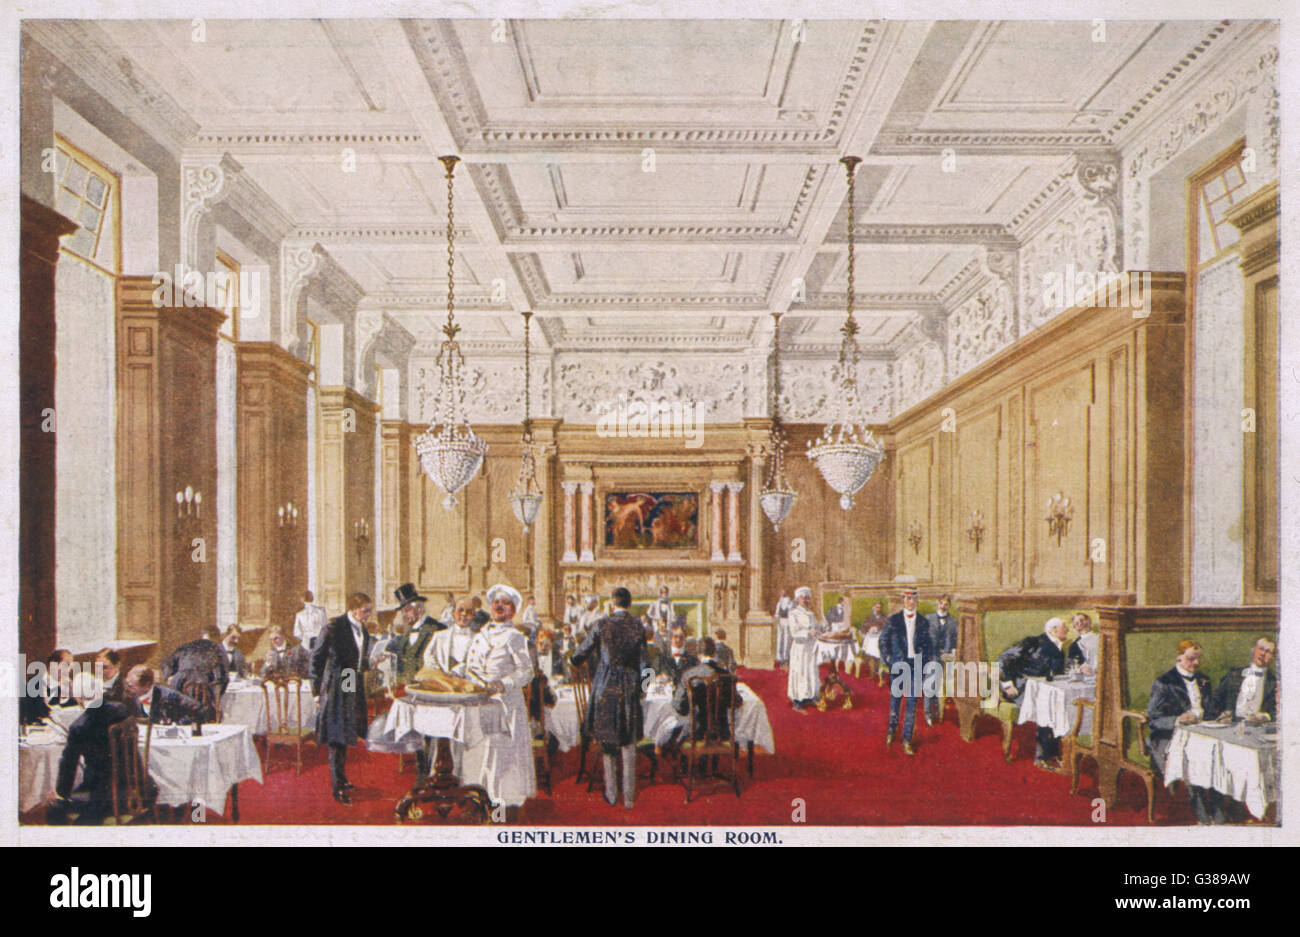 Dining at fashionable  Simpson's restaurant in the  Strand : the Gentlemen's  Dining Room       Date: circa - Stock Image